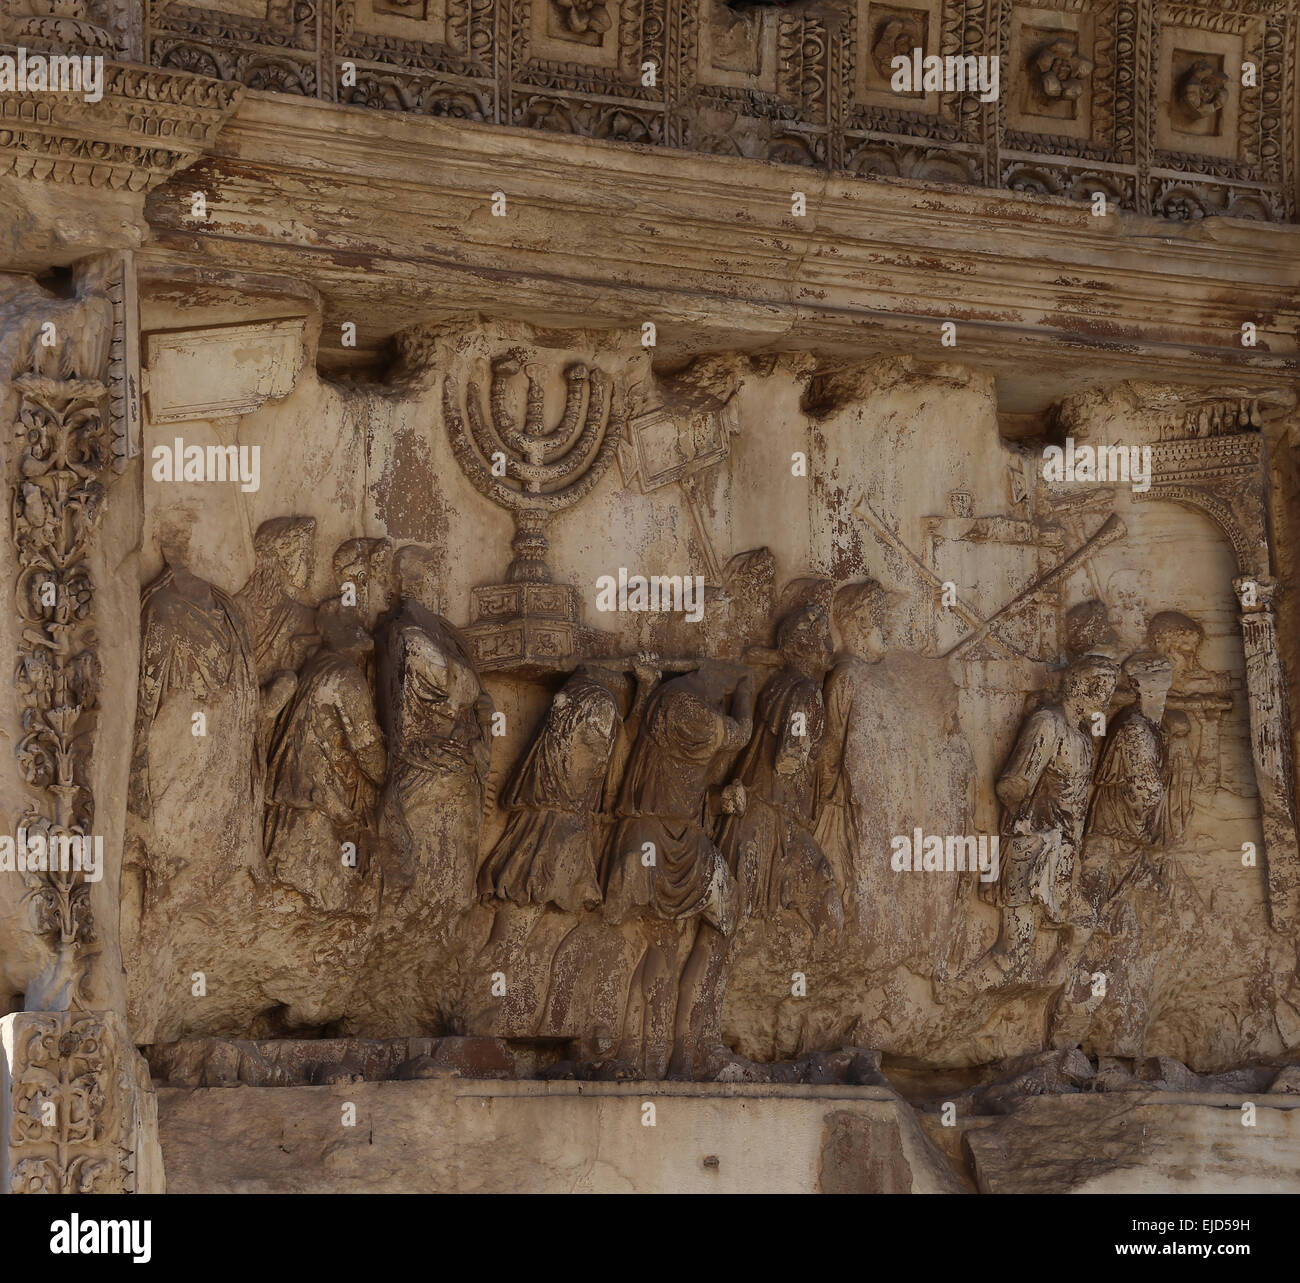 Italy. Rome. Arch of Titus. Constructed in 82 AD by the emperor Domitian to commemorate Titus' victories. Spoil - Stock Image